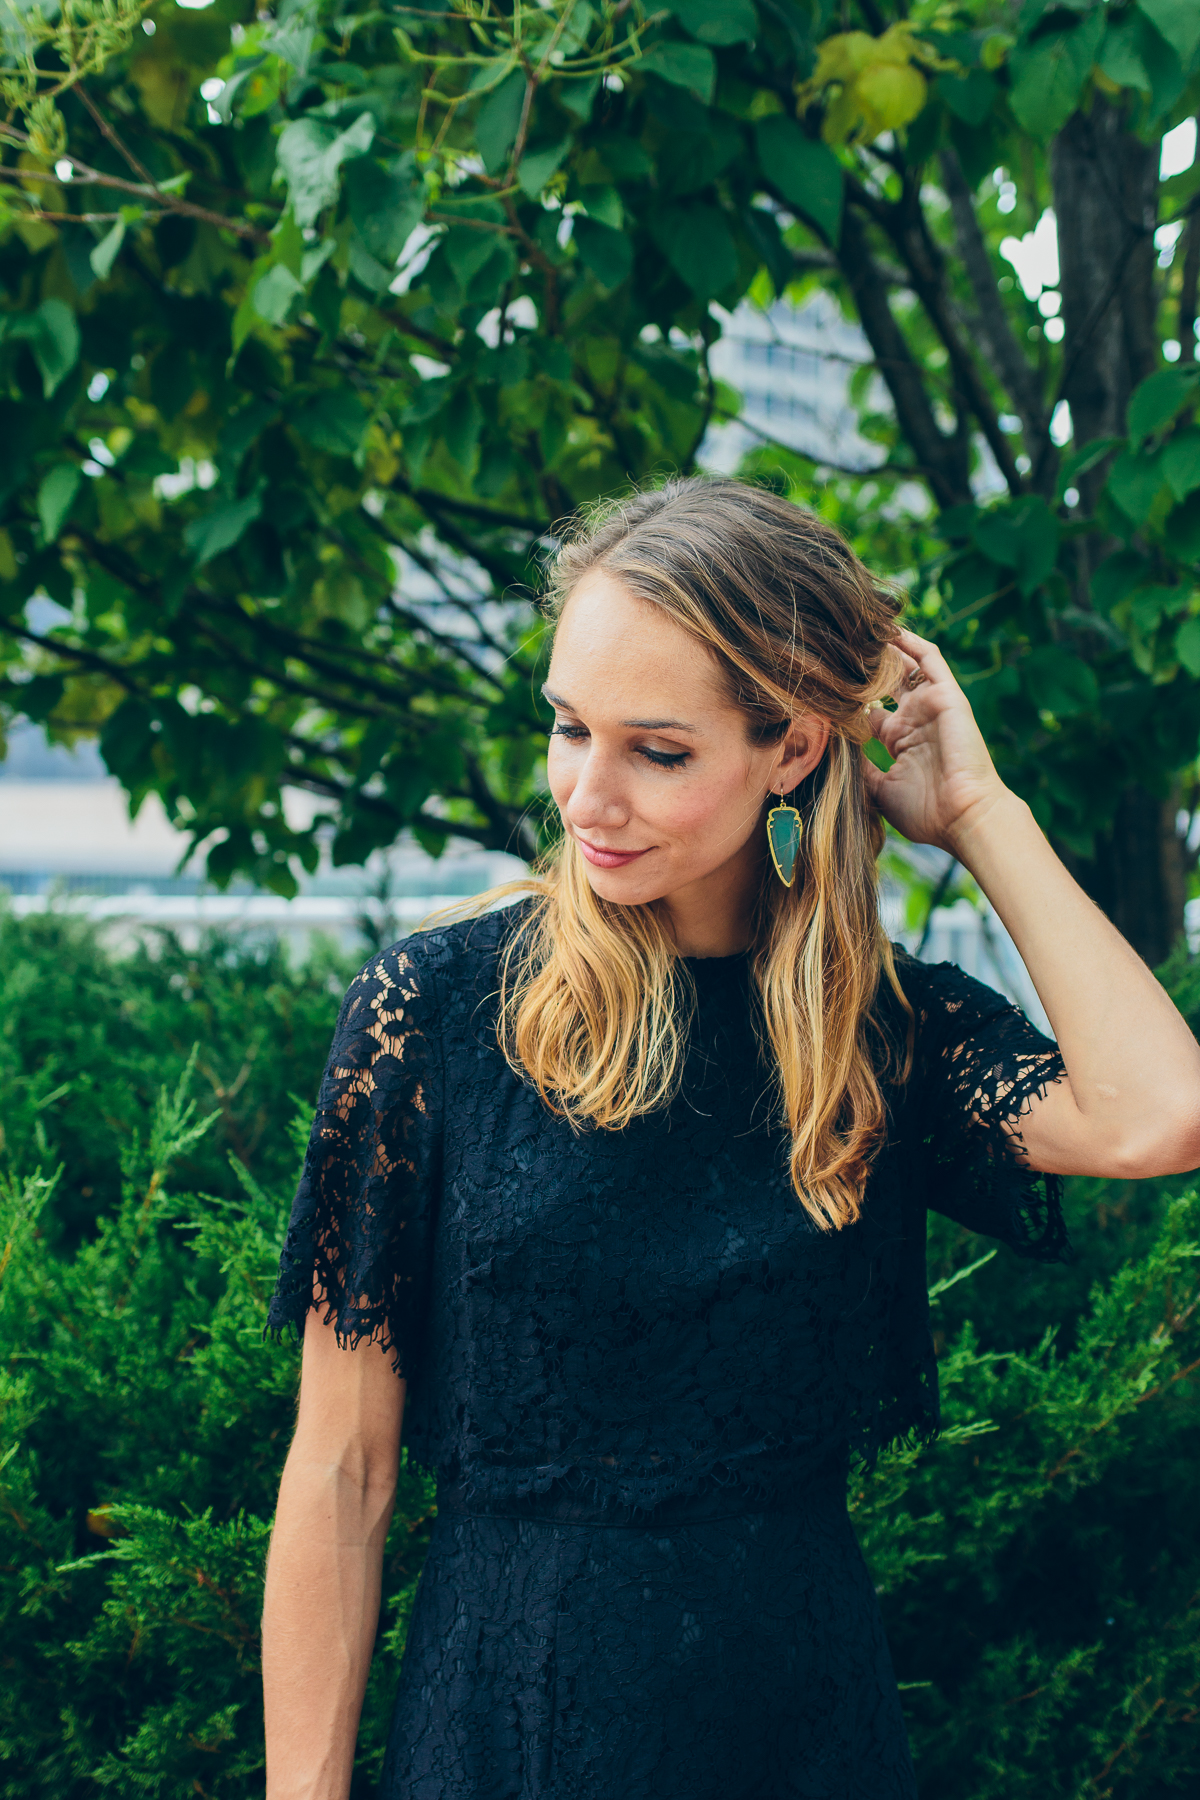 Black Lace Dress — via @TheFoxandShe